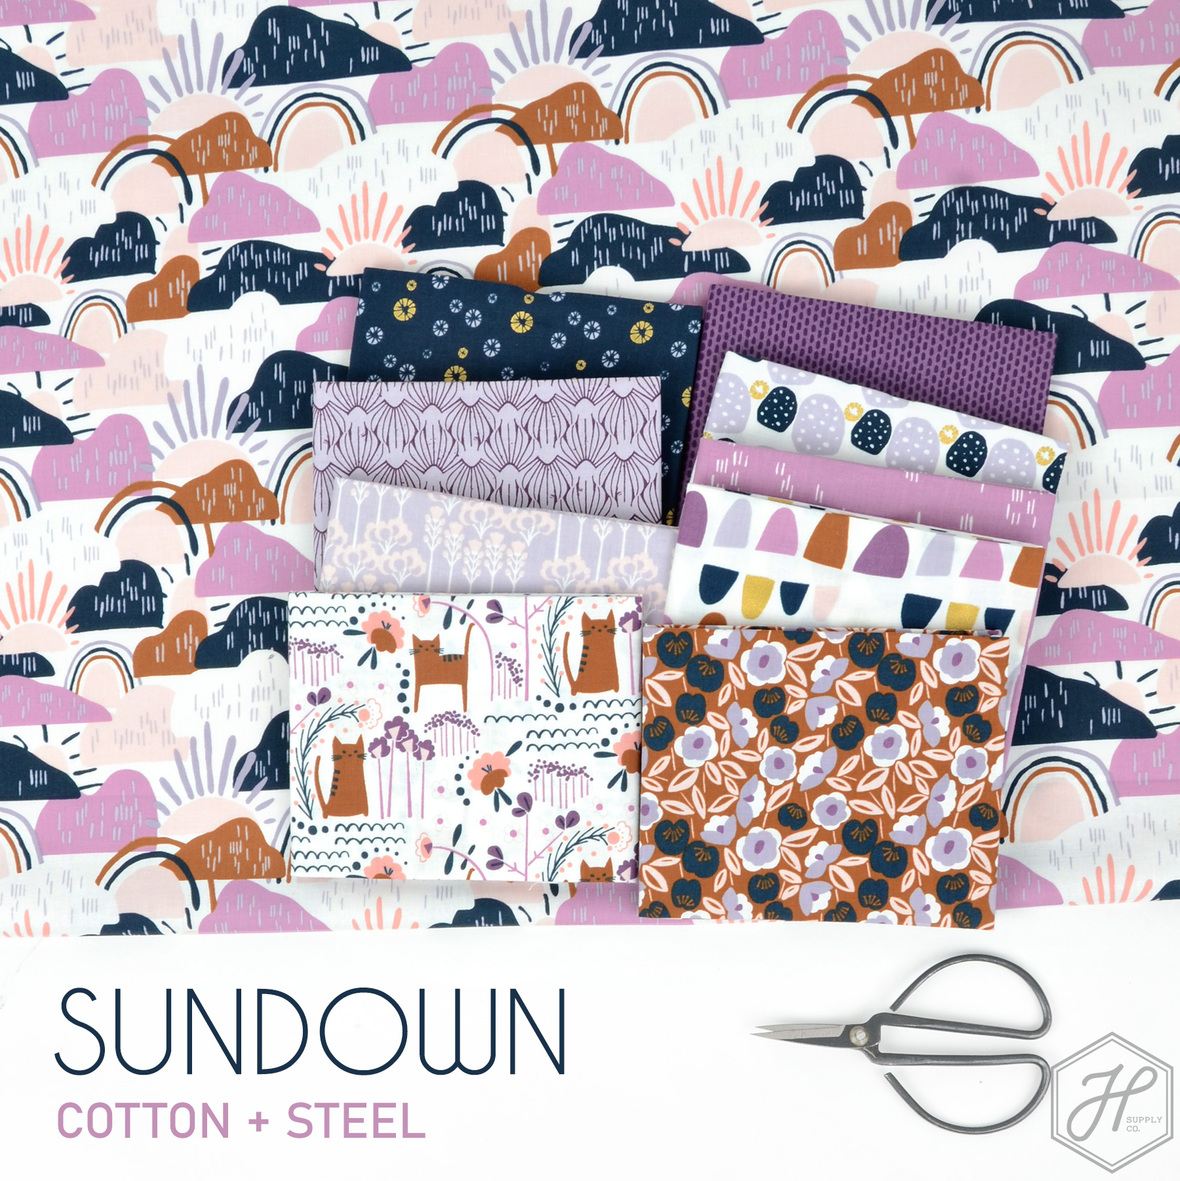 Sundown-Cotton-and-Steel-fabric-at-Hawthorne-Supply-Co